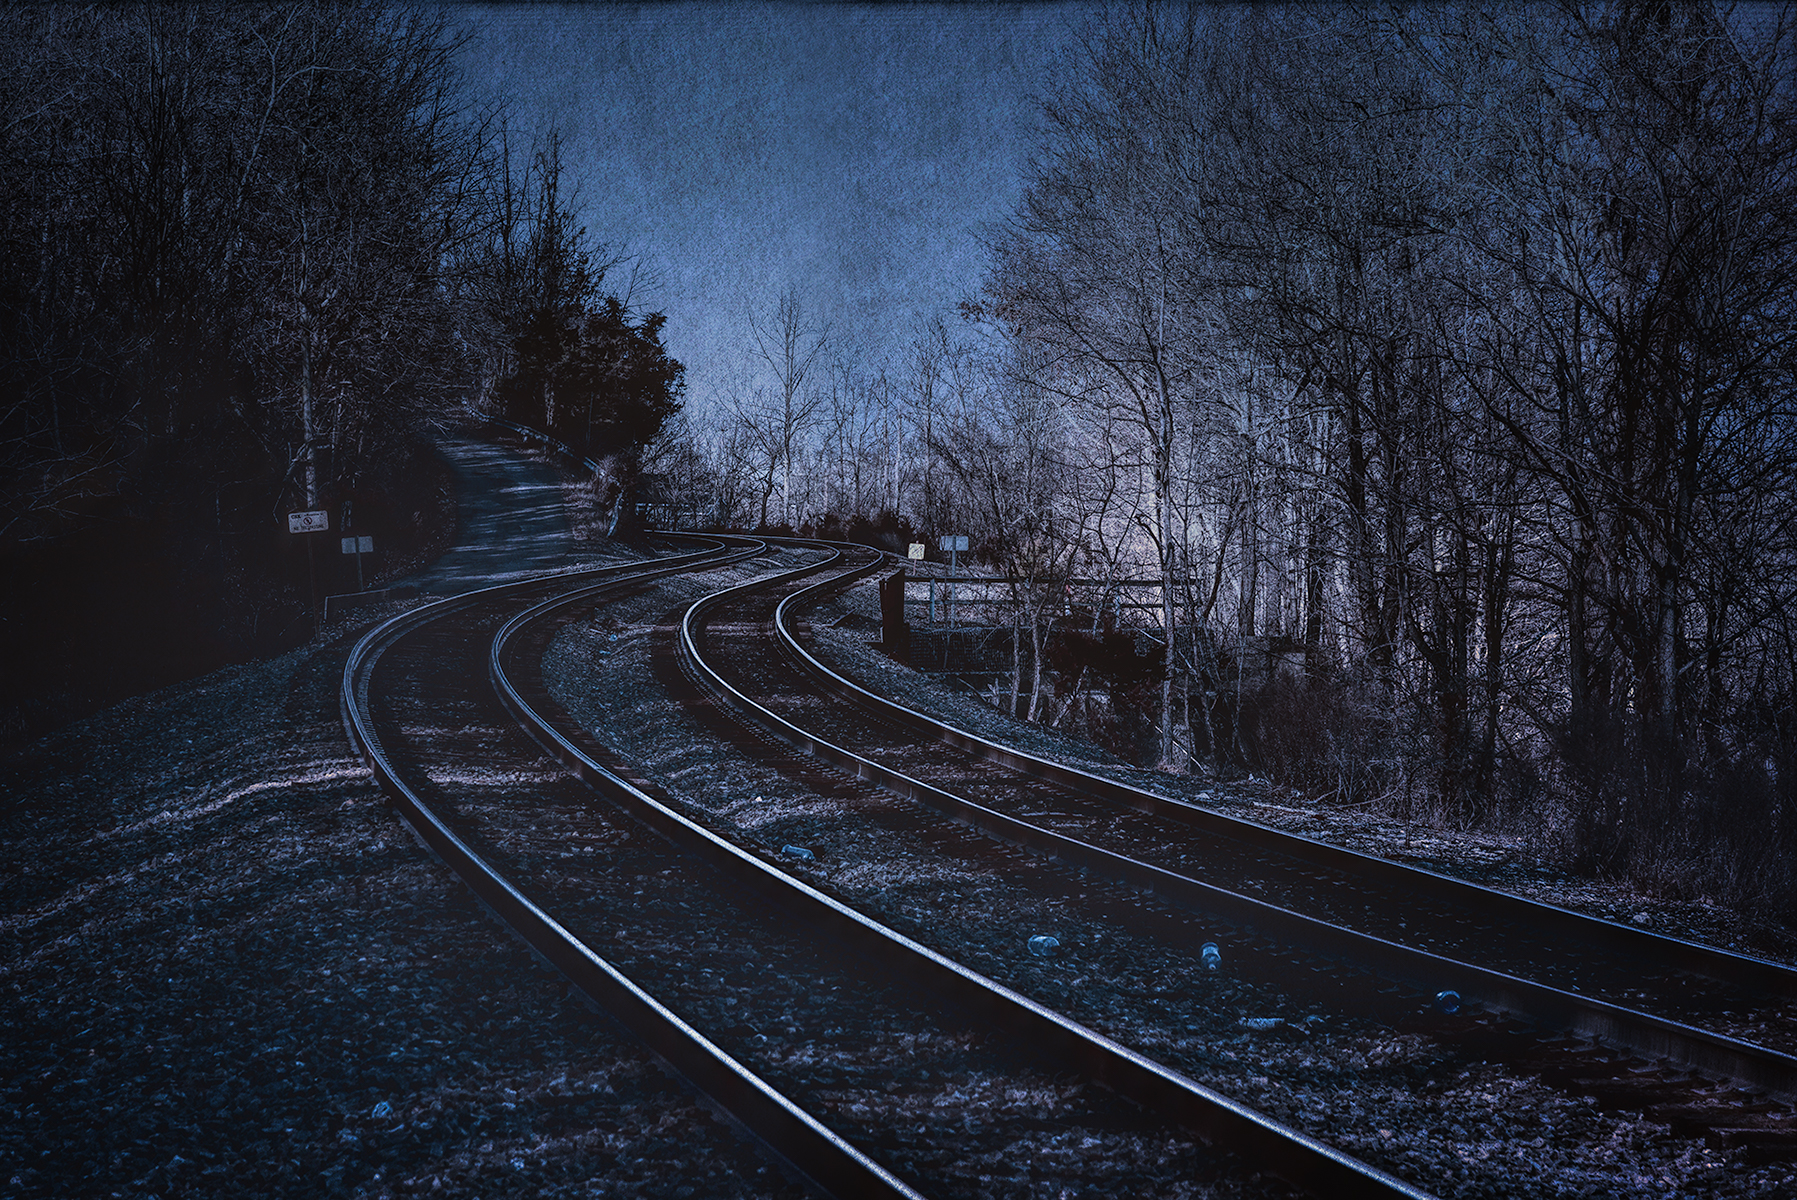 Night Train Coming - Nikon D750, 1/320 @ f/10, ISO 200, 120mm - Another good seller! See my poem, Night Train Coming, in the Poetry Section.